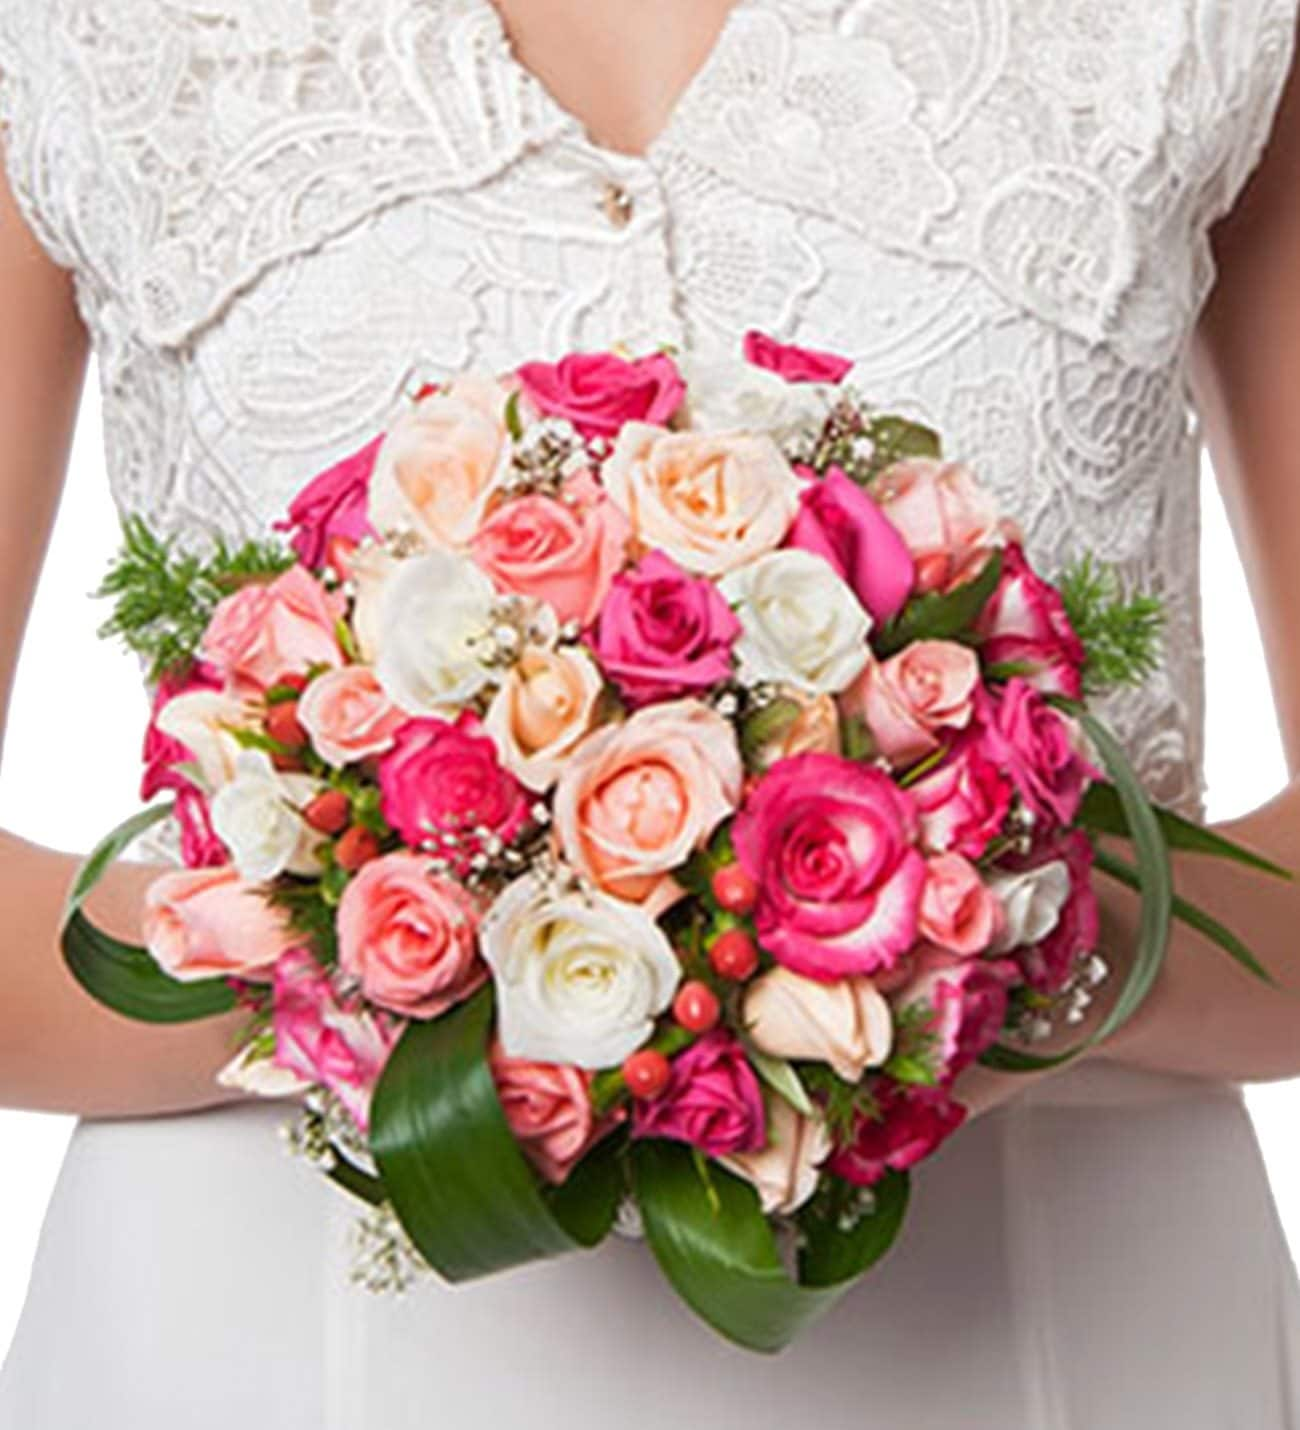 The Bouquet Of Snow White Beauty Kc143551